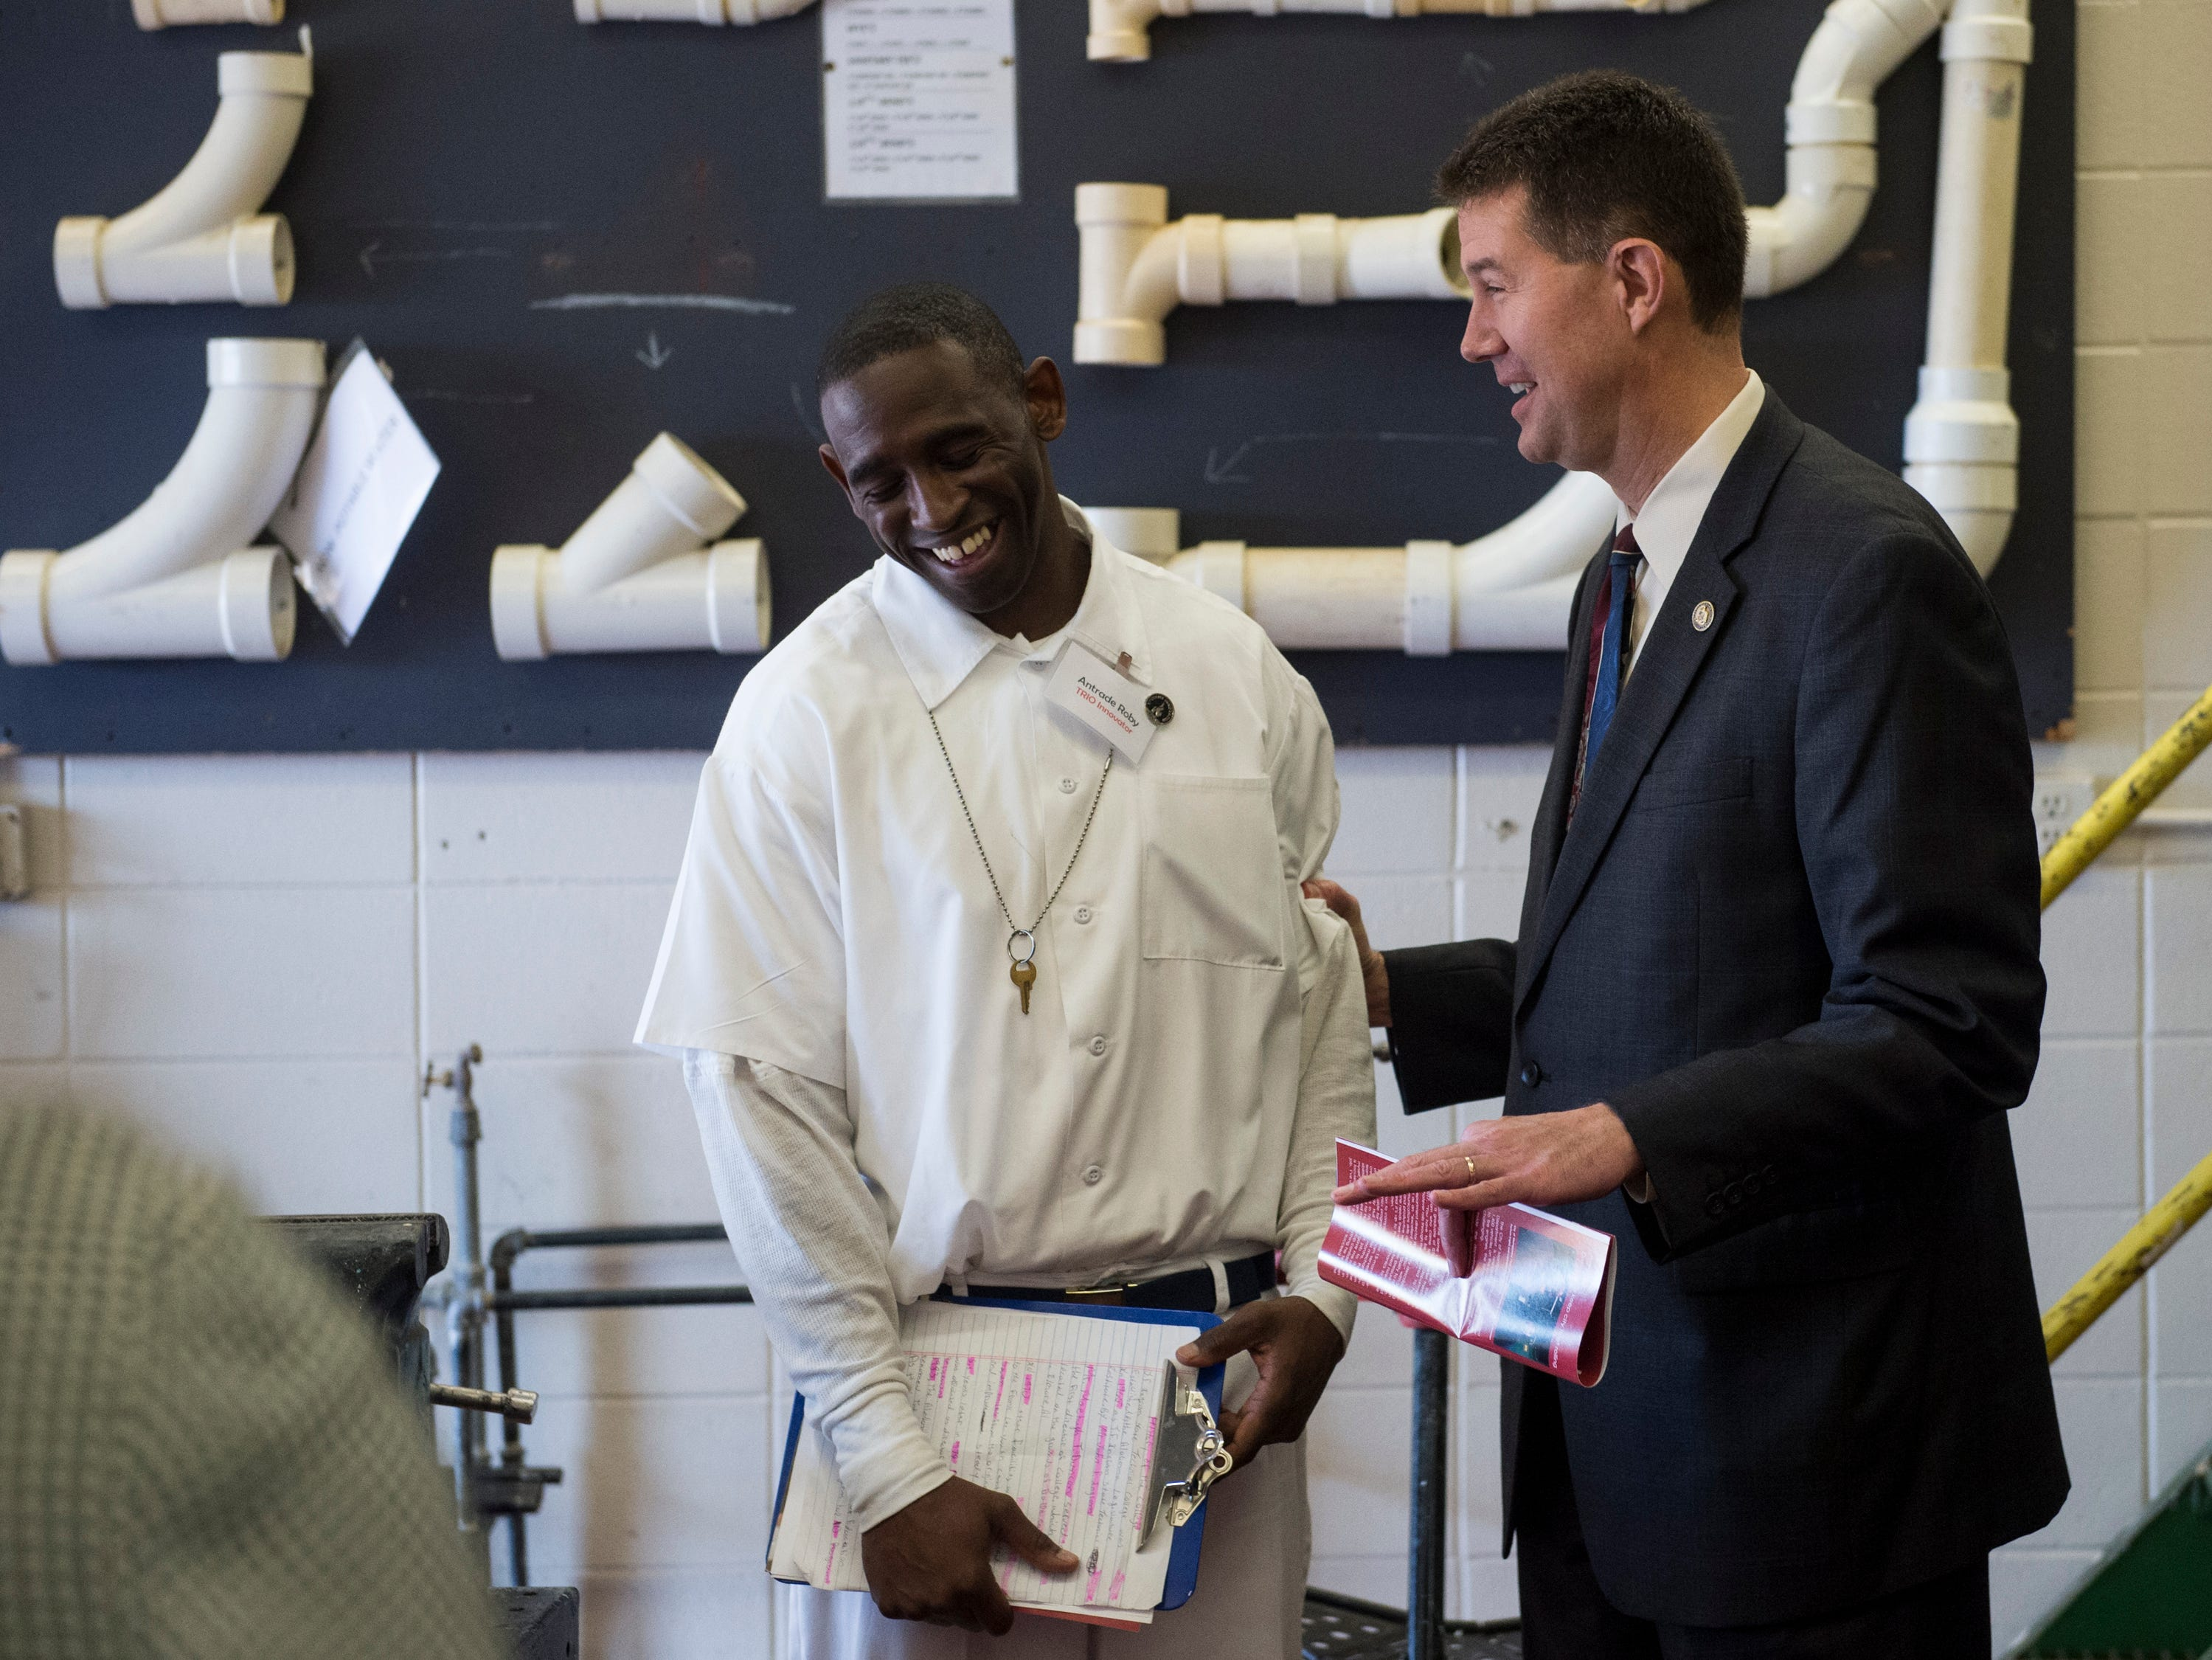 Student-inmate Antrade Roby and Alabama Secretary of State John Merrill joke during a tour at the Ingram State Technical College Draper instructional service center in Elmore, Ala., on Thursday, Feb. 21, 2019.